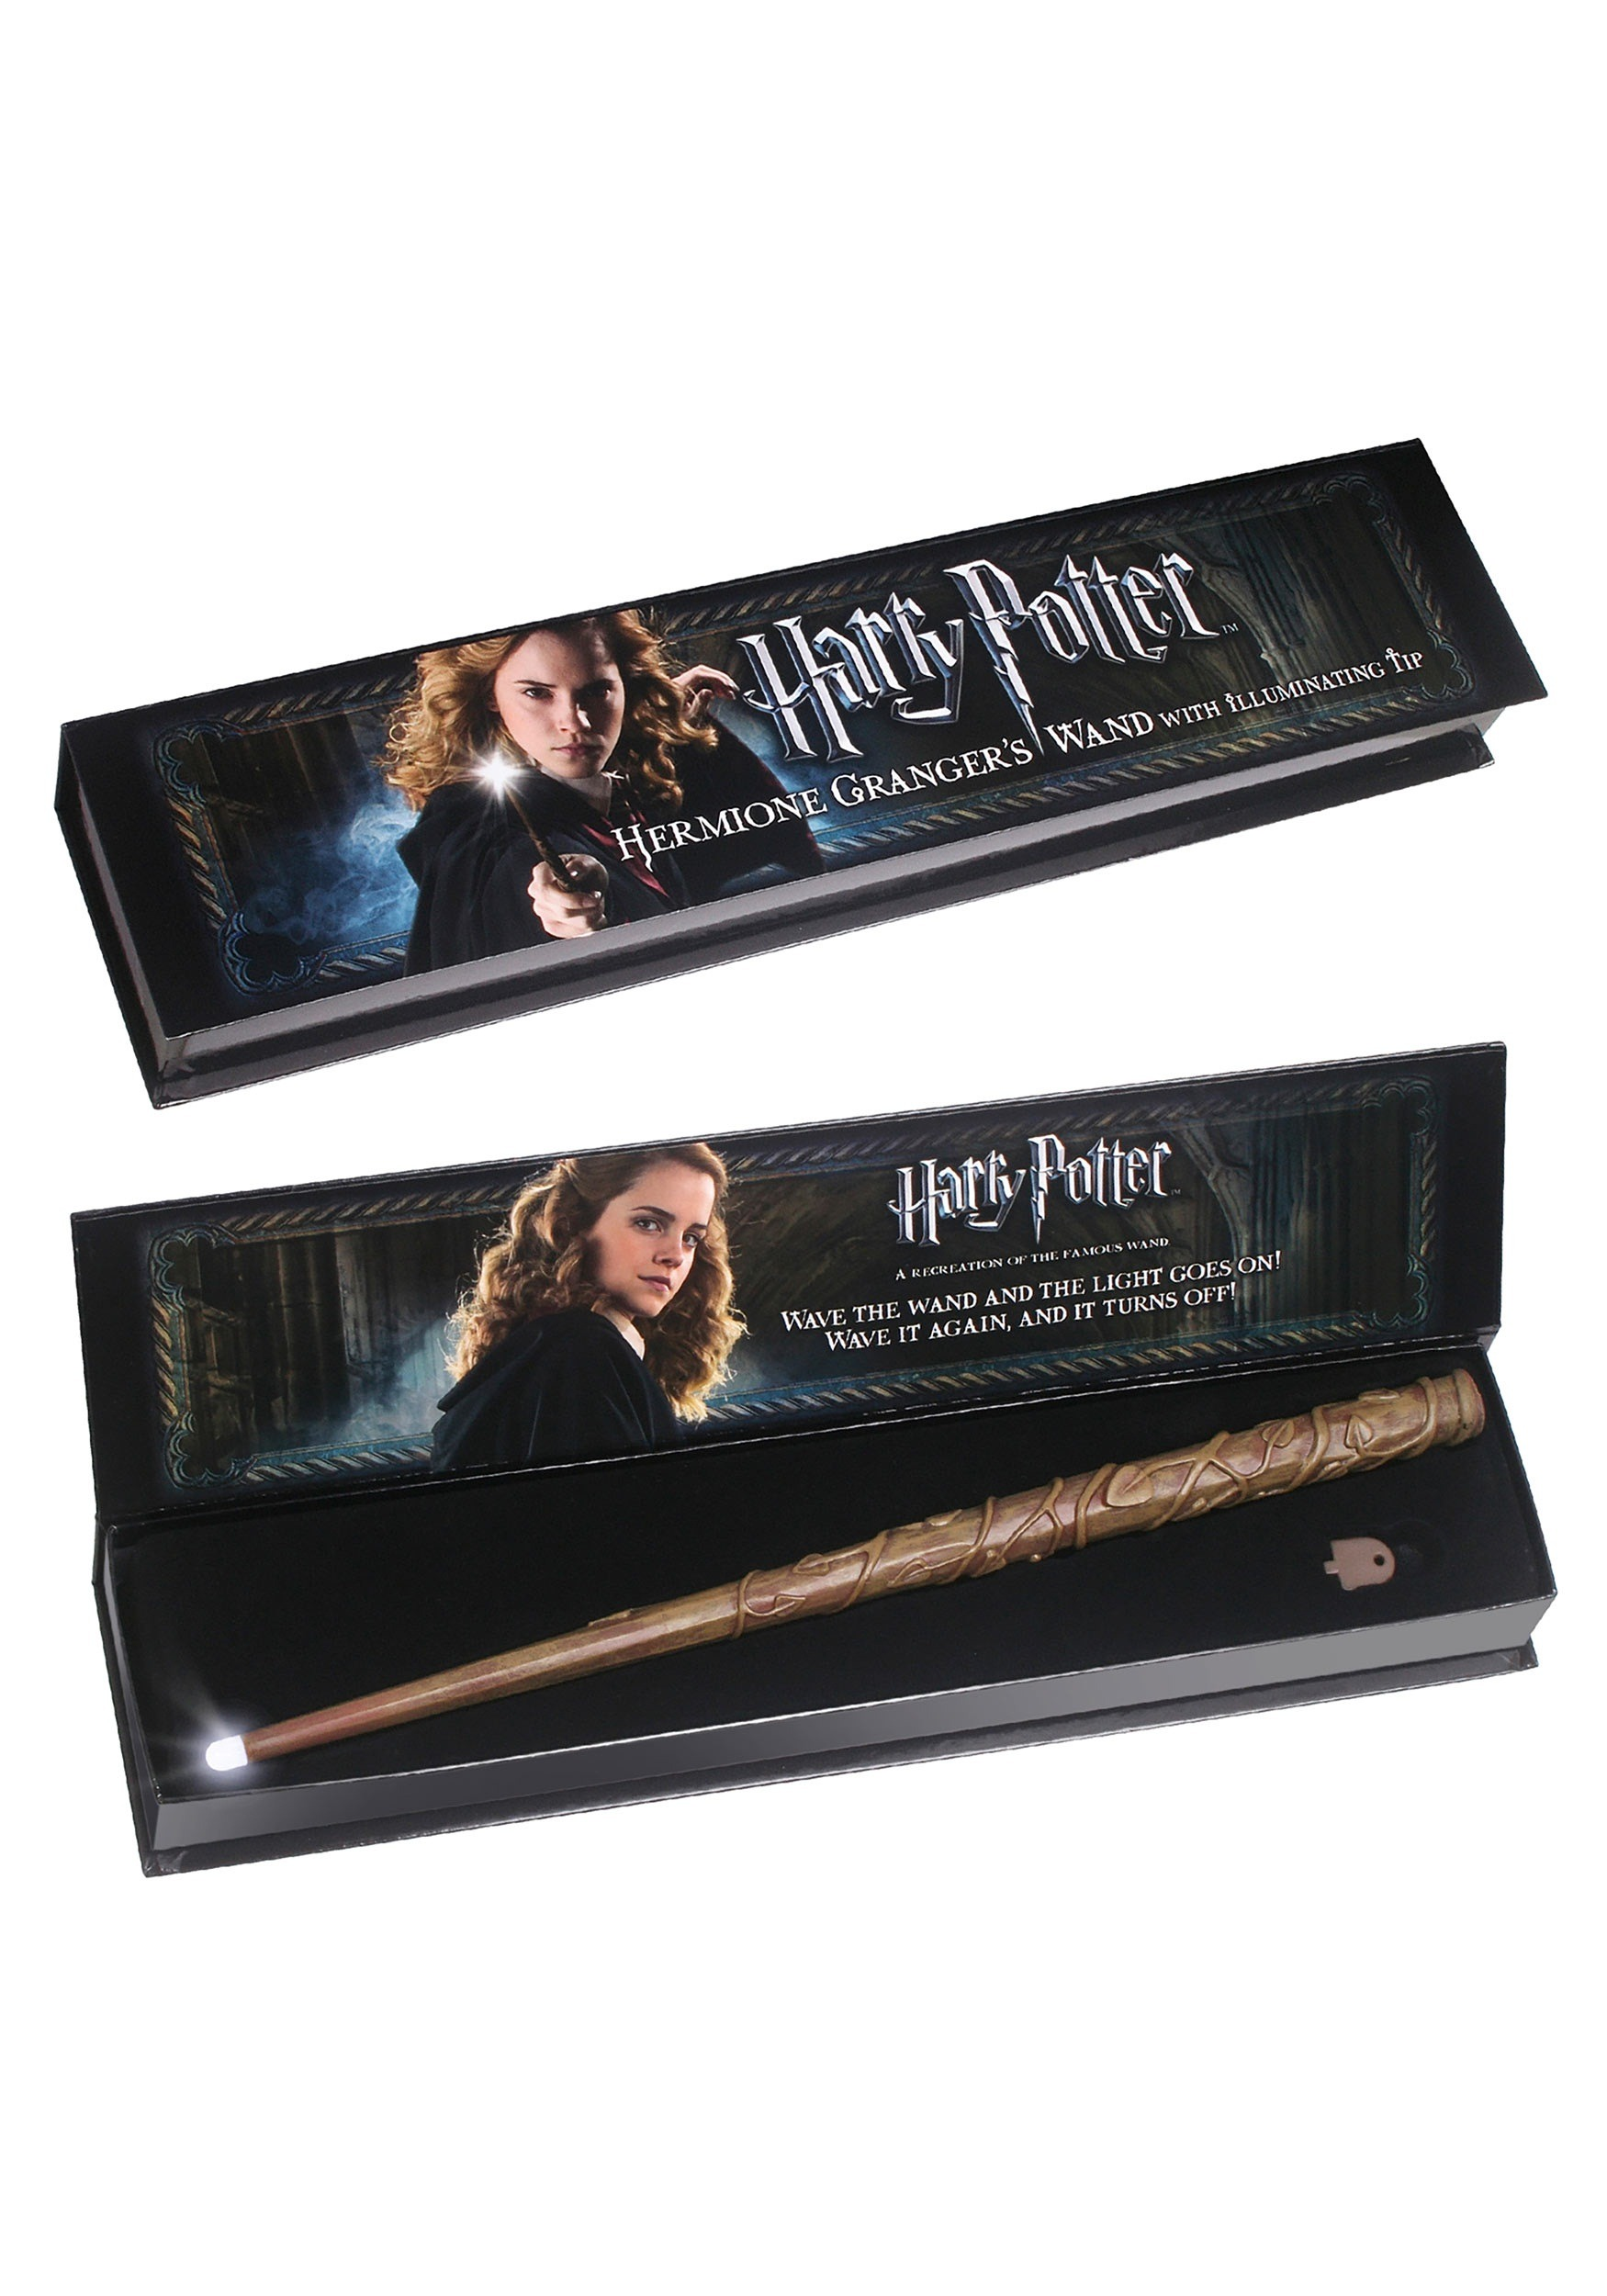 The Noble Collection Hermione Granger/'s Illuminating Wand